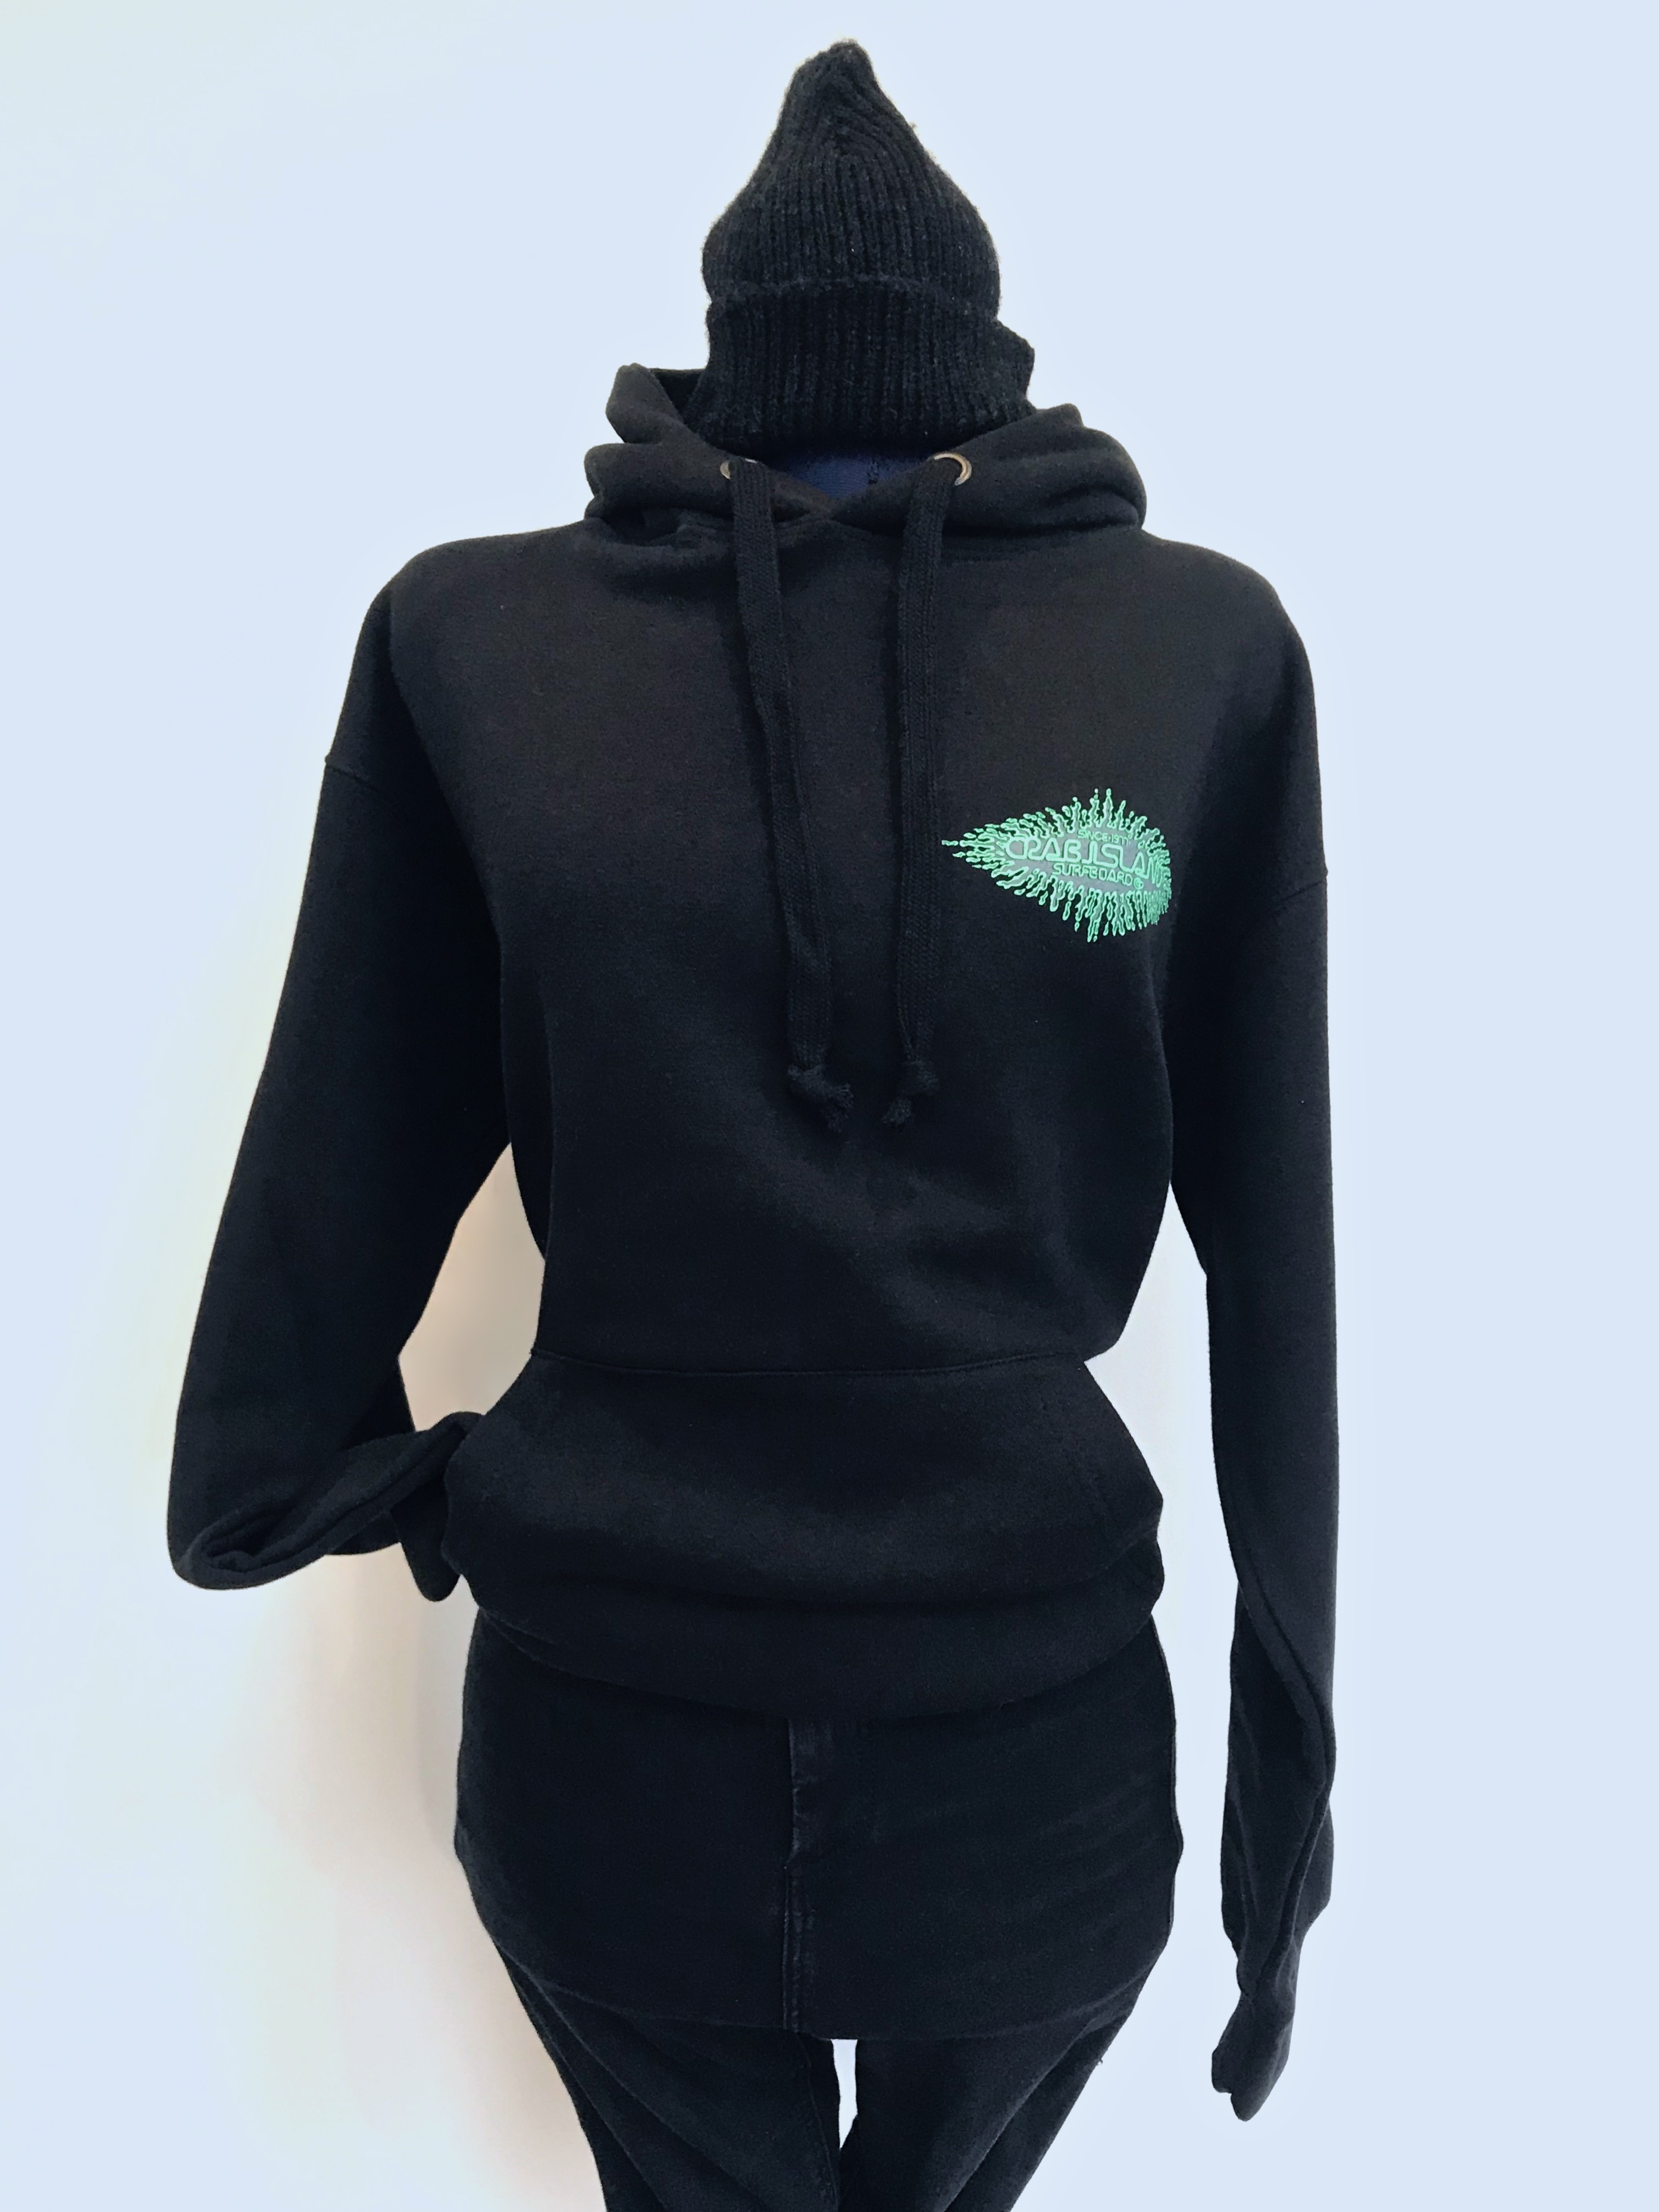 Black hoodie with Crab Island Splash logo